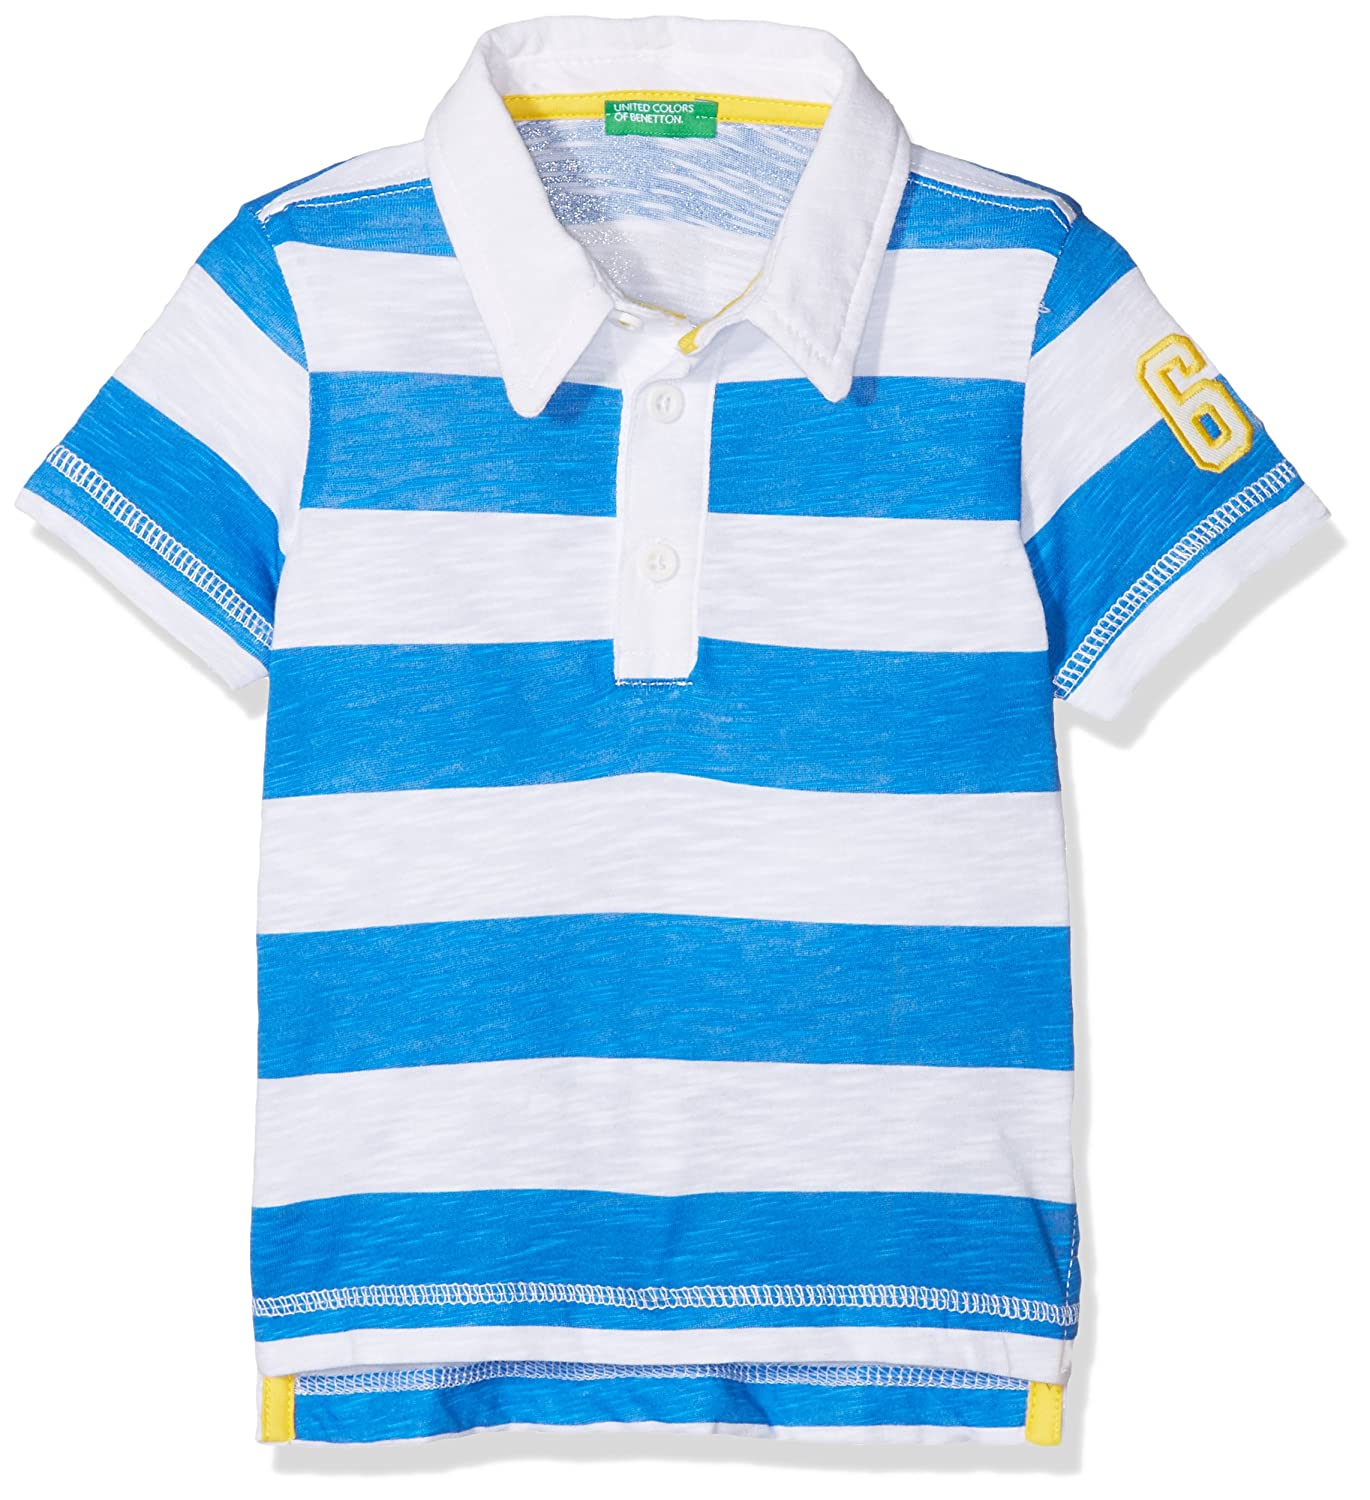 United Colors of Benetton H/s Shirt, Multicolor (White & Electric ...